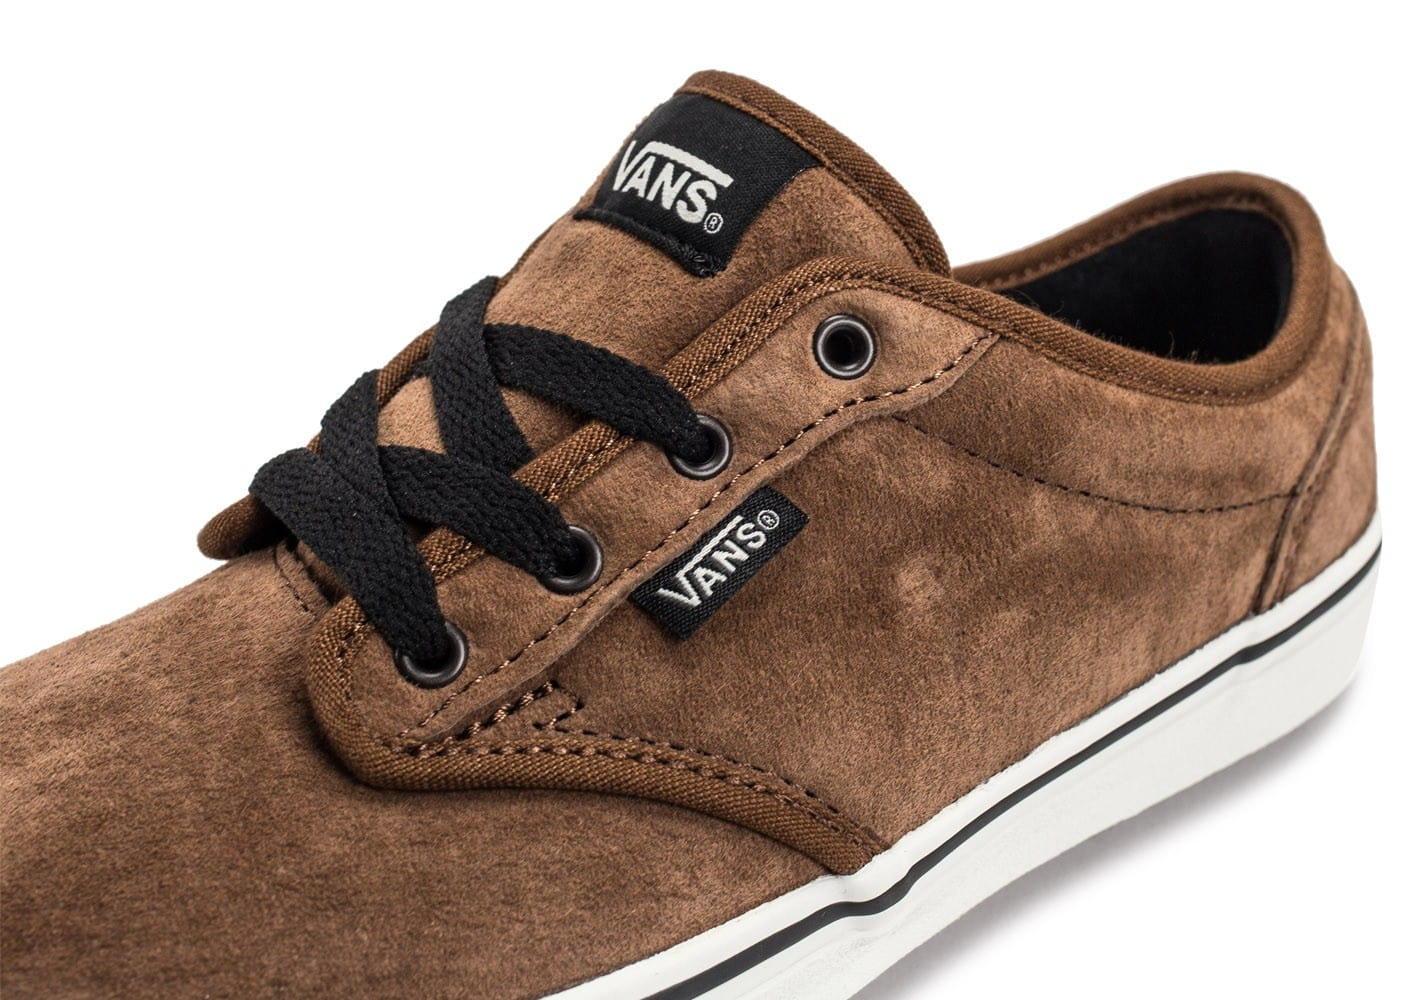 Chaussures homme Baskets Vans Atwood Mte fnULc